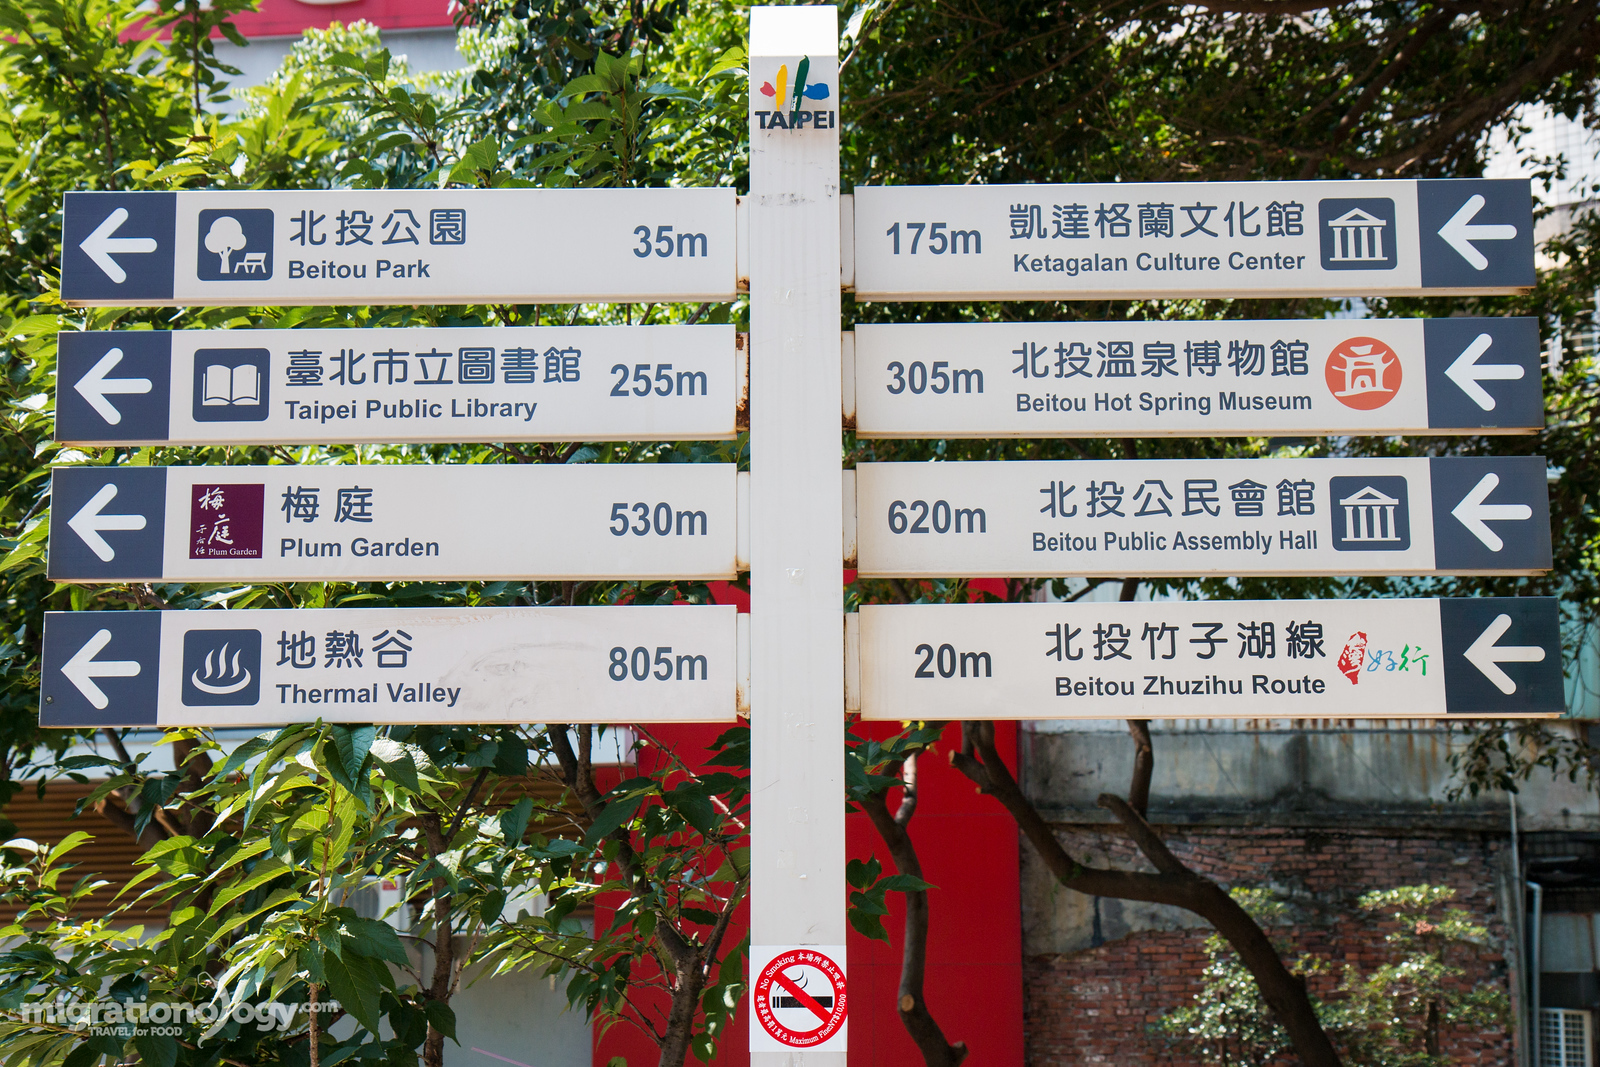 how to get to Beitou